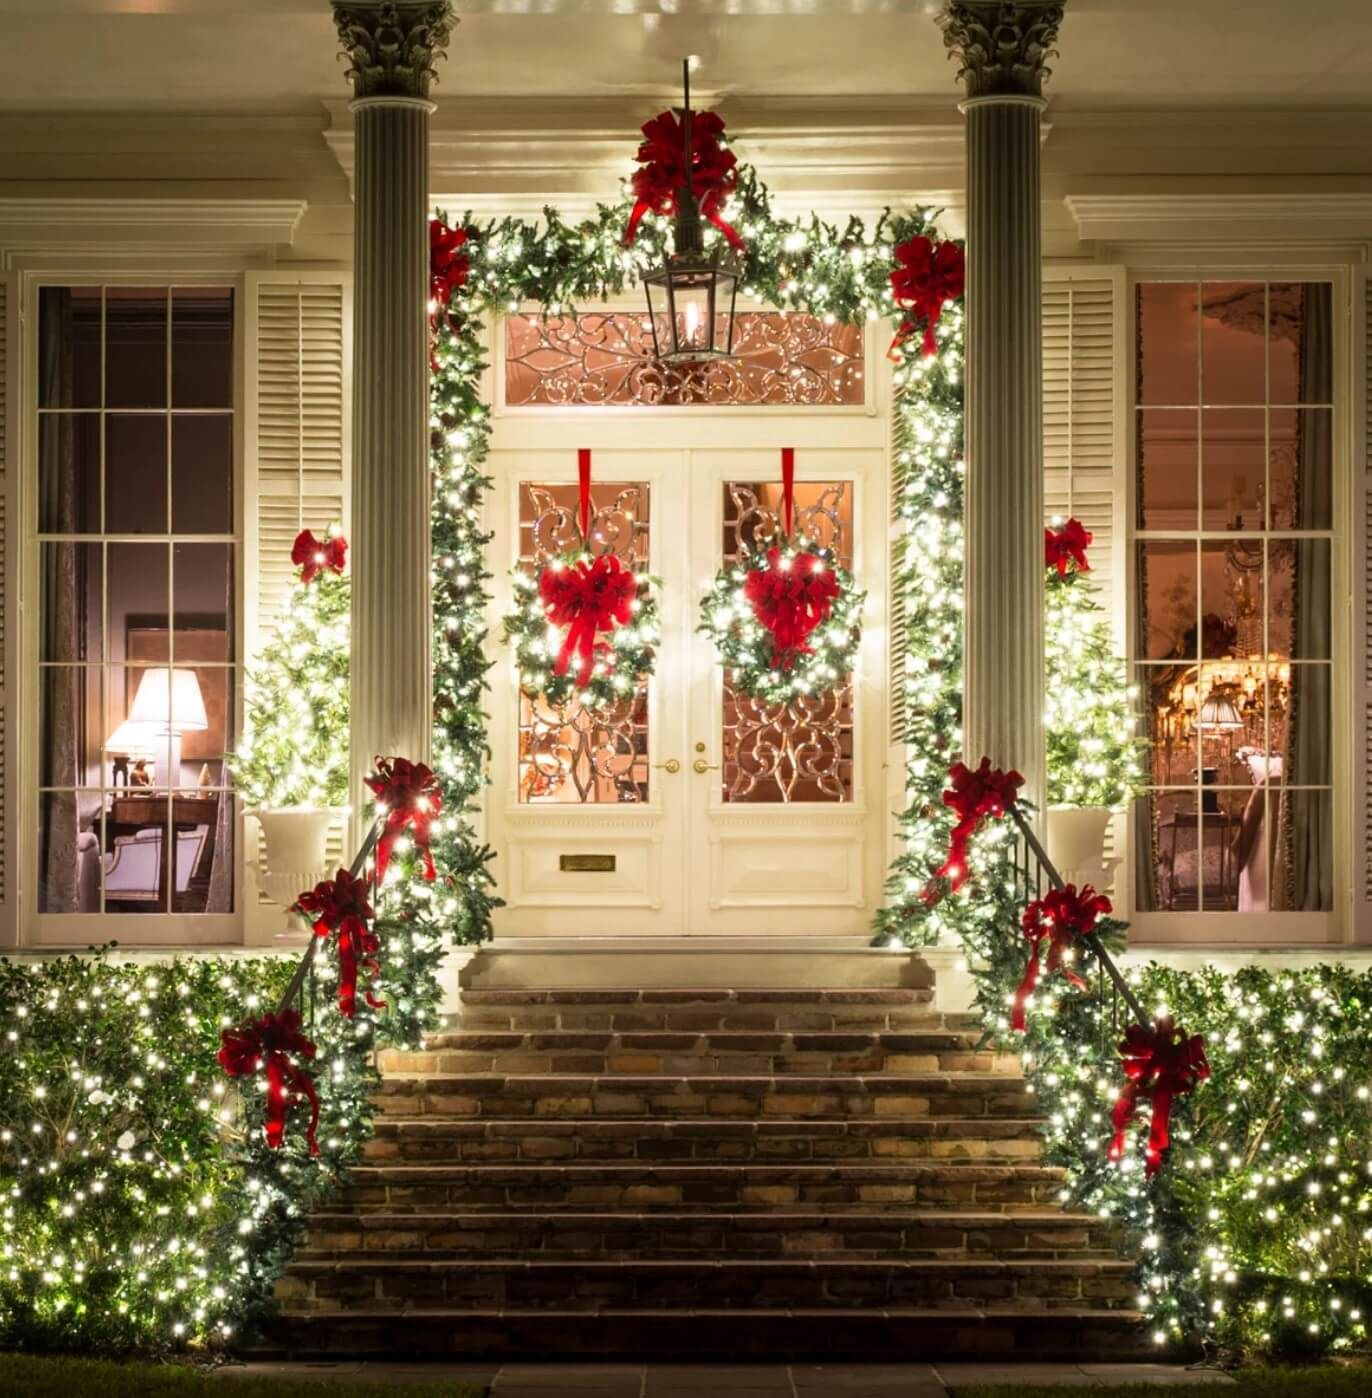 20 Best Christmas Door And Window Lighting Decorating Ideas 2020 Front Porch Christmas Decor Outdoor Christmas Diy Christmas Lights